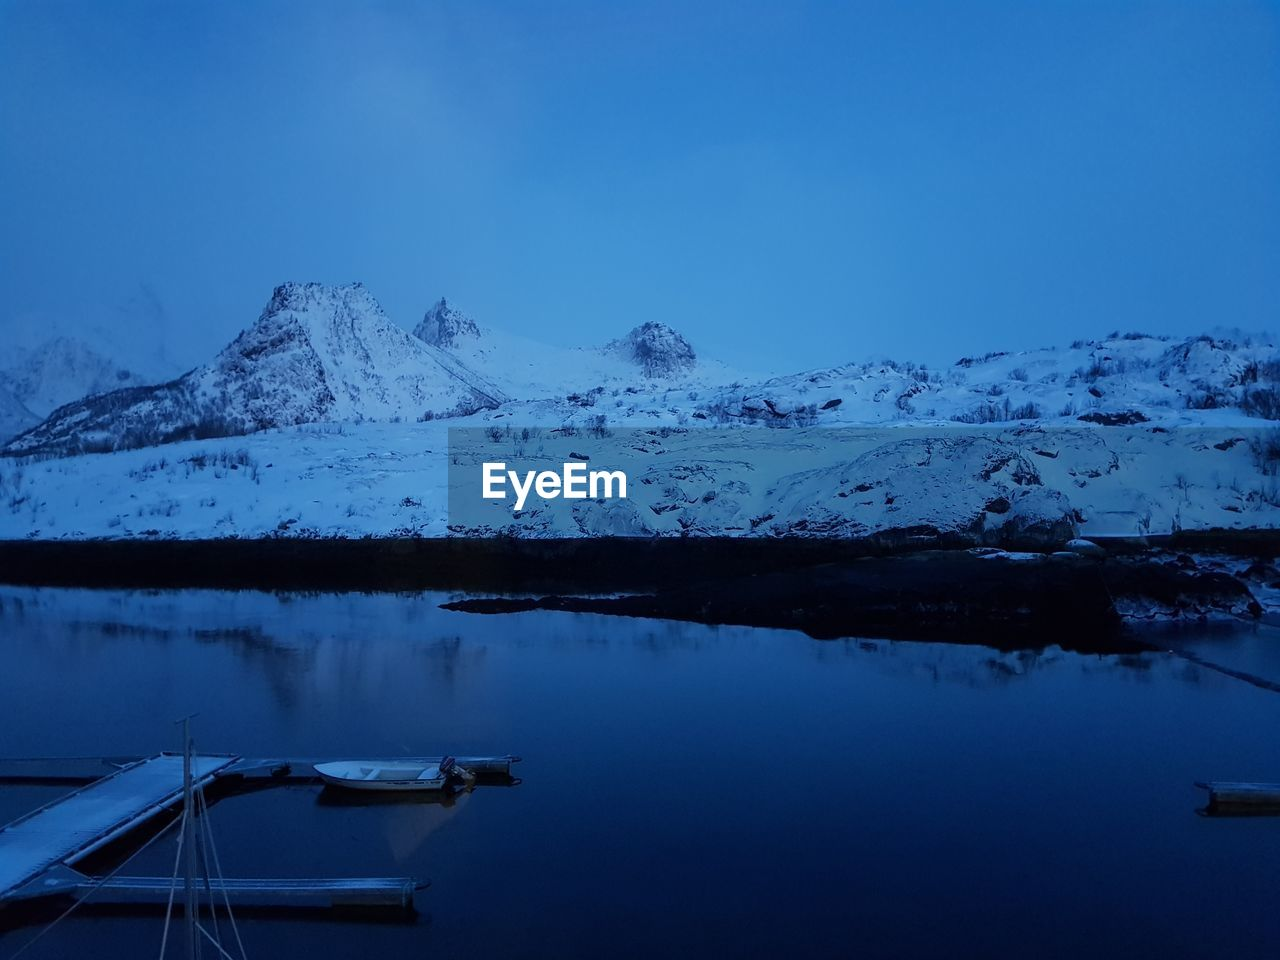 winter, cold temperature, snow, scenics - nature, water, beauty in nature, mountain, sky, tranquility, tranquil scene, snowcapped mountain, reflection, lake, blue, nature, non-urban scene, no people, mountain range, ice